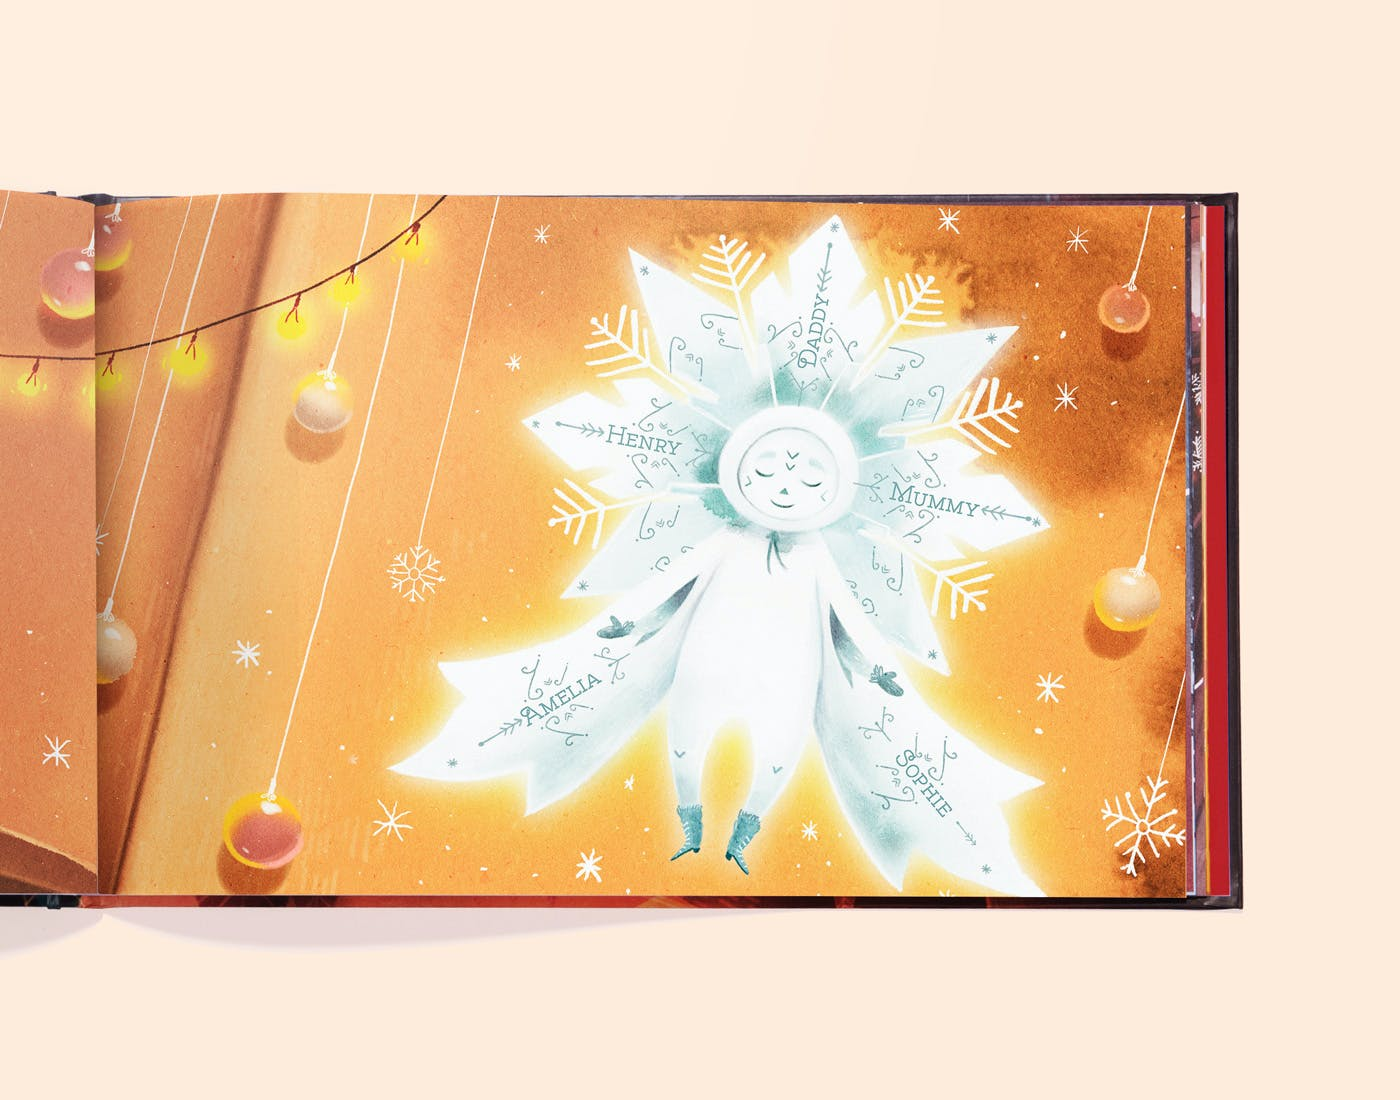 Personalised snowflake image at end of book.